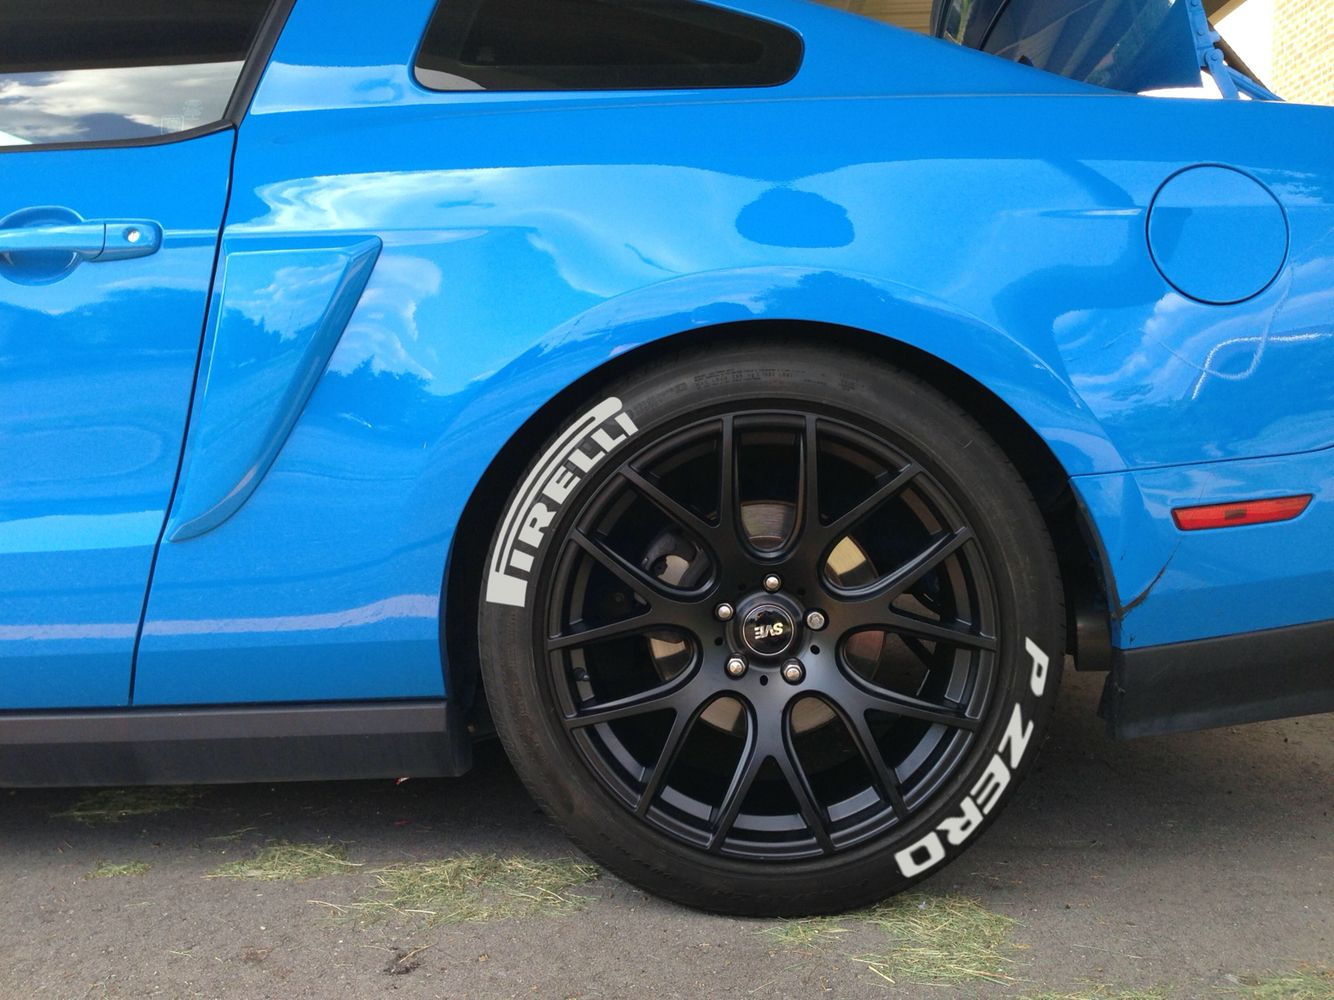 Raised white letter tires on a Mustang | Noelia's new shoes